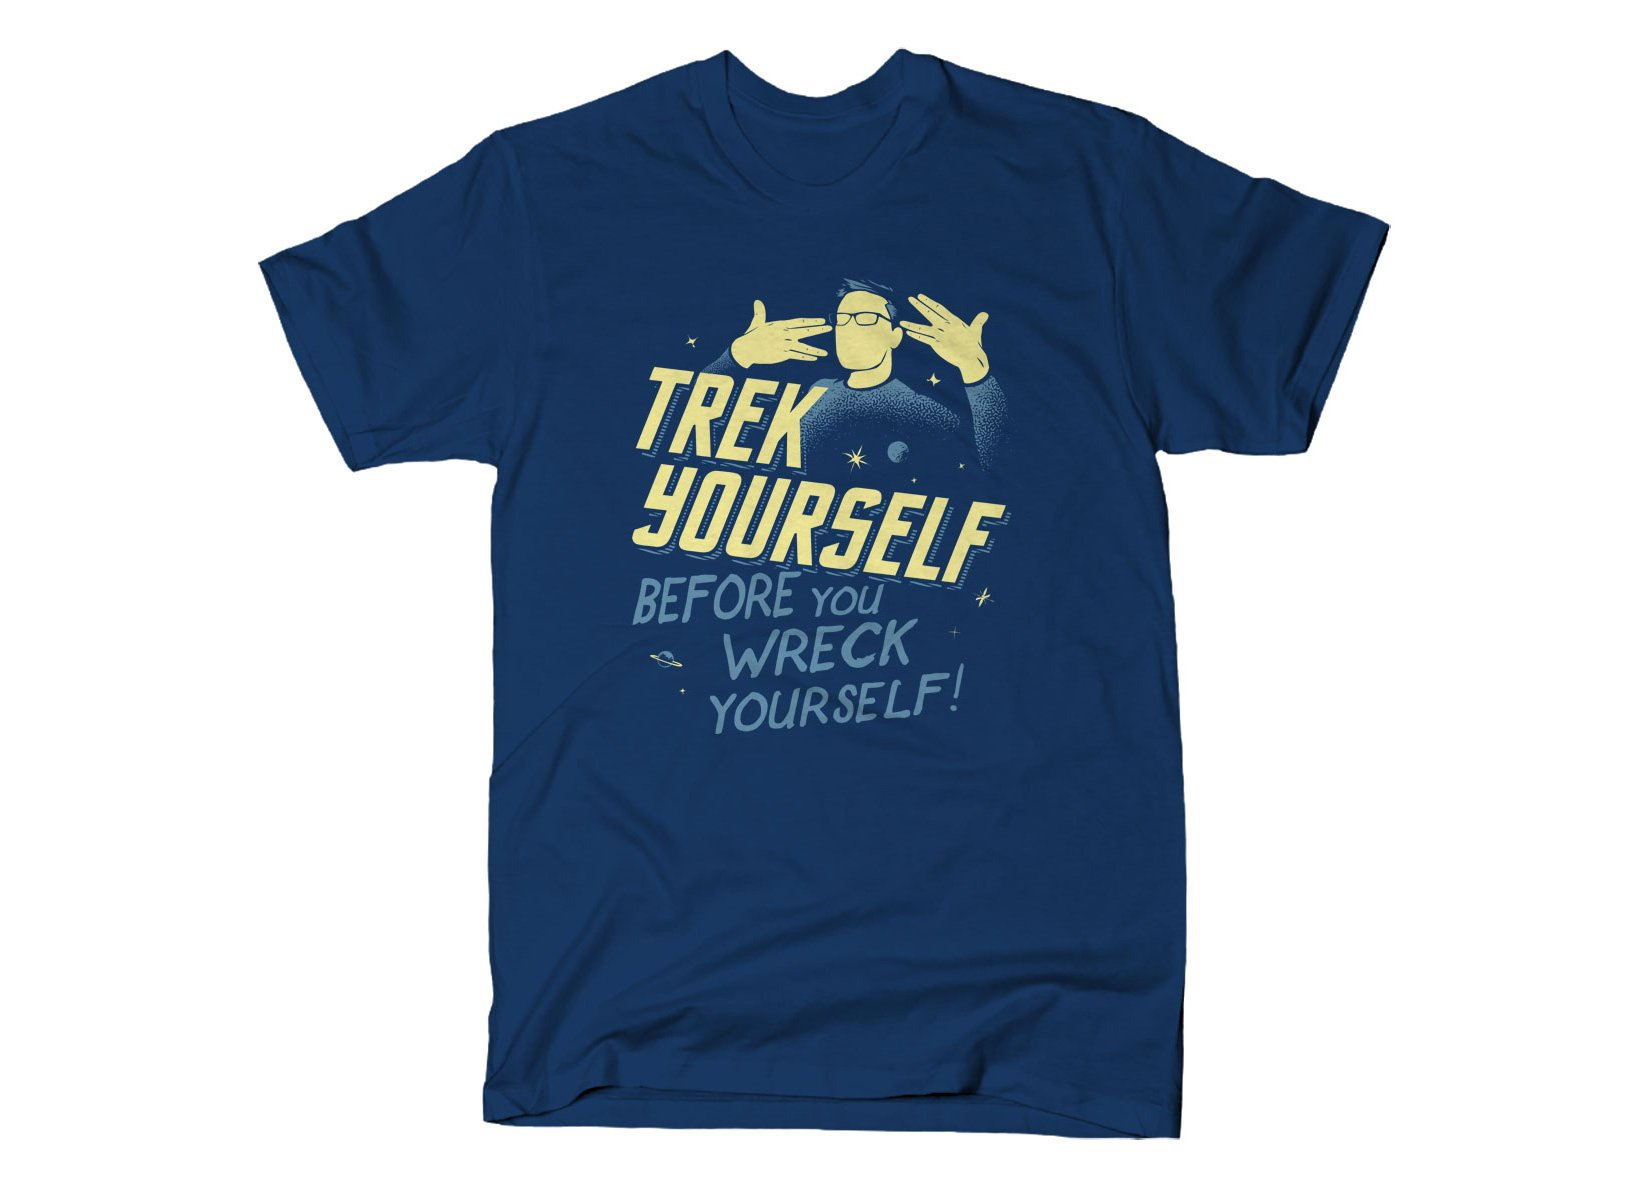 Trek Yourself Before You Wreck Yourself on Mens T-Shirt